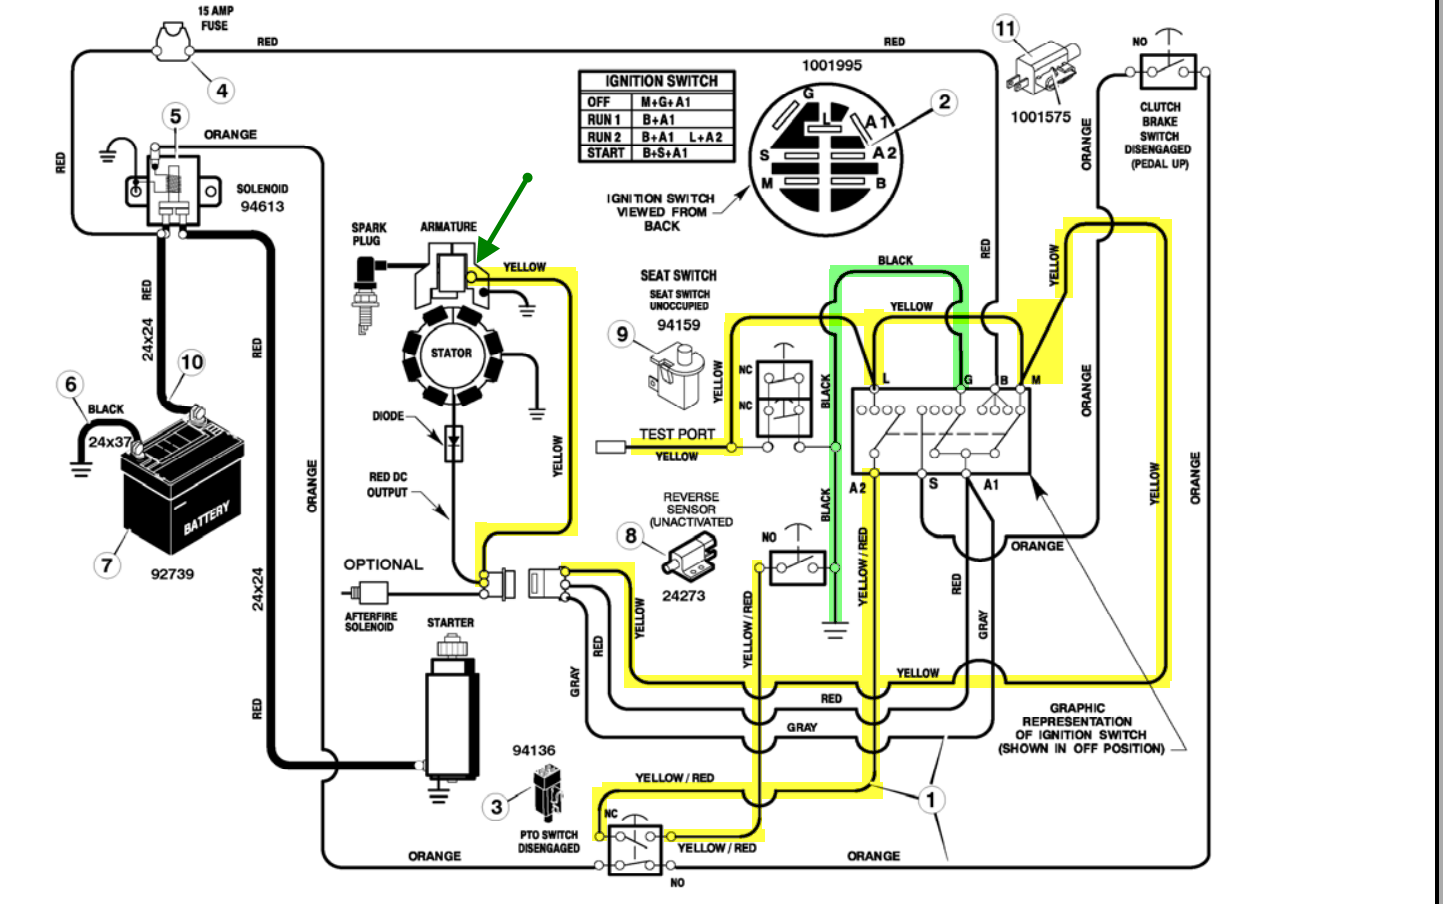 10 hp briggs parts diagram wiring schematic wiring diagram for you [ 1443 x 904 Pixel ]